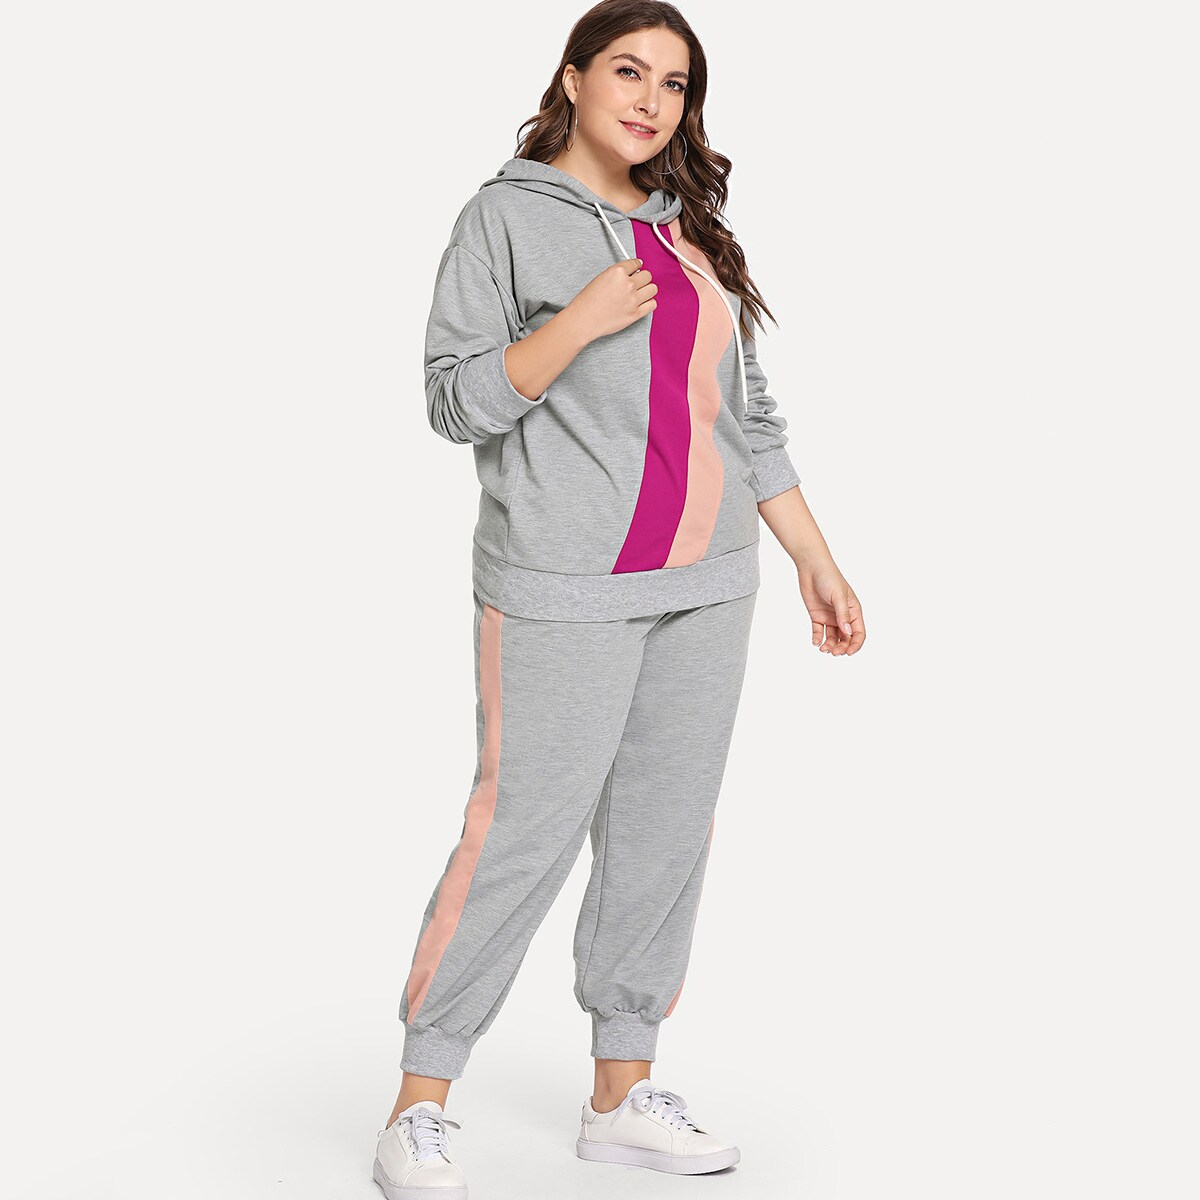 Plus Cut And Sew Drawstring Hoodie With Pants - Shein - GOOFASH